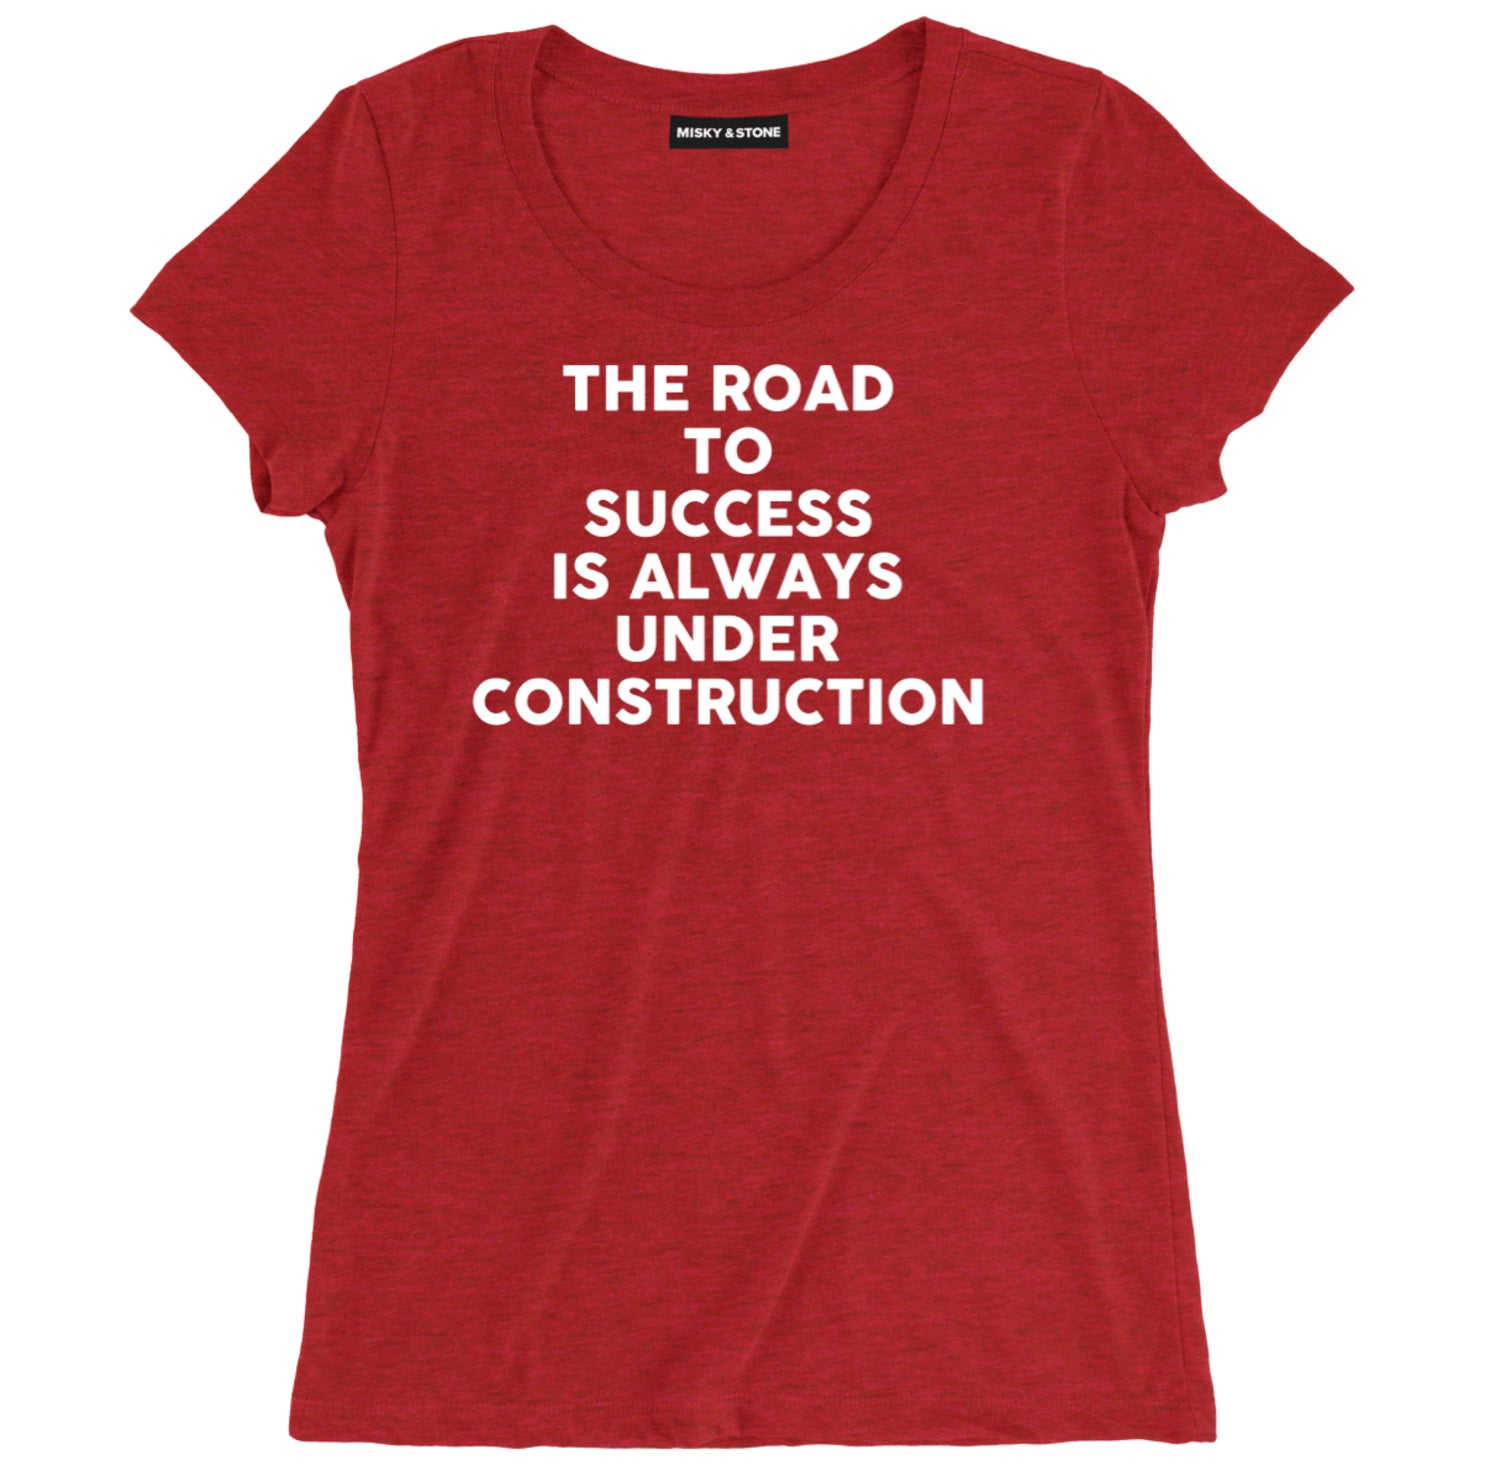 the road to success is always under construction spiritual t shirts, under construction spiritual shirts, road to success spiritual quote t shirts